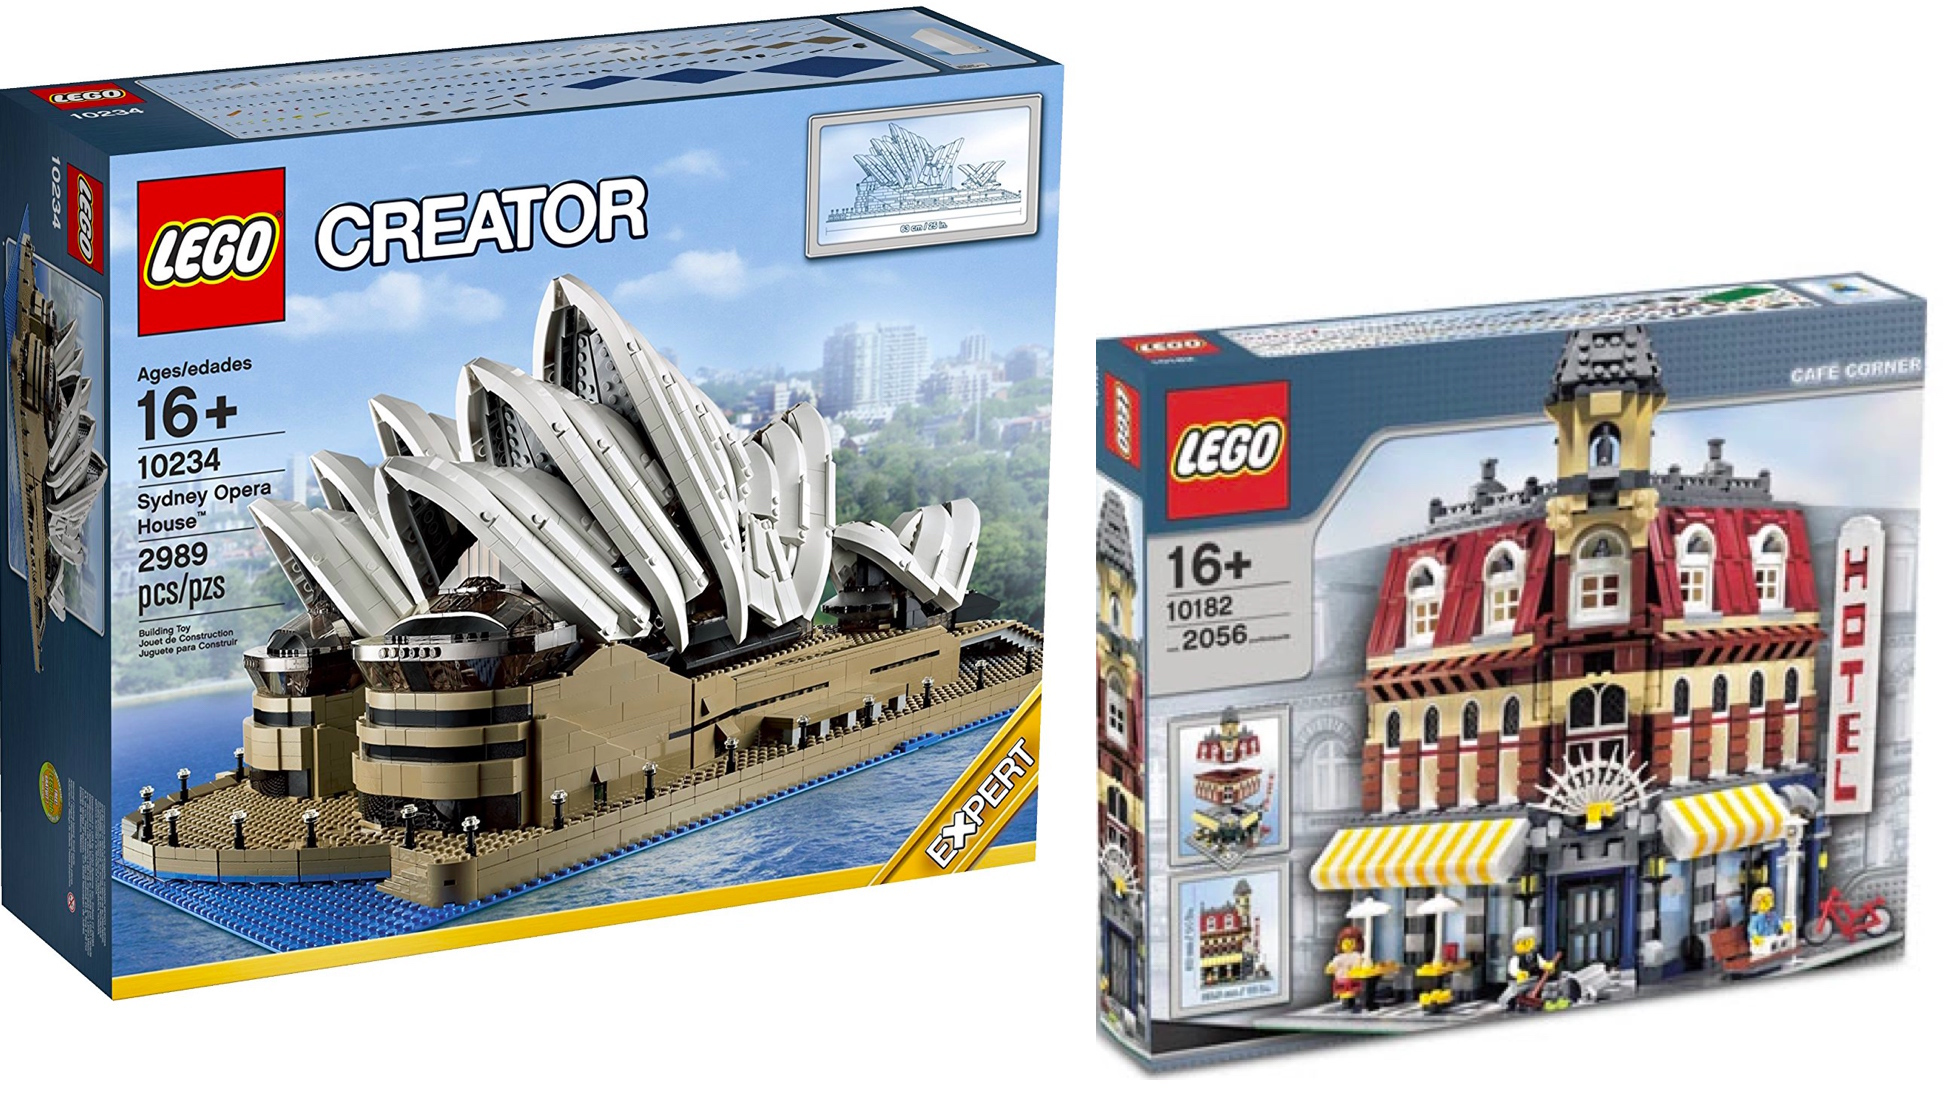 6 reasons to buy lego collector sets catawiki